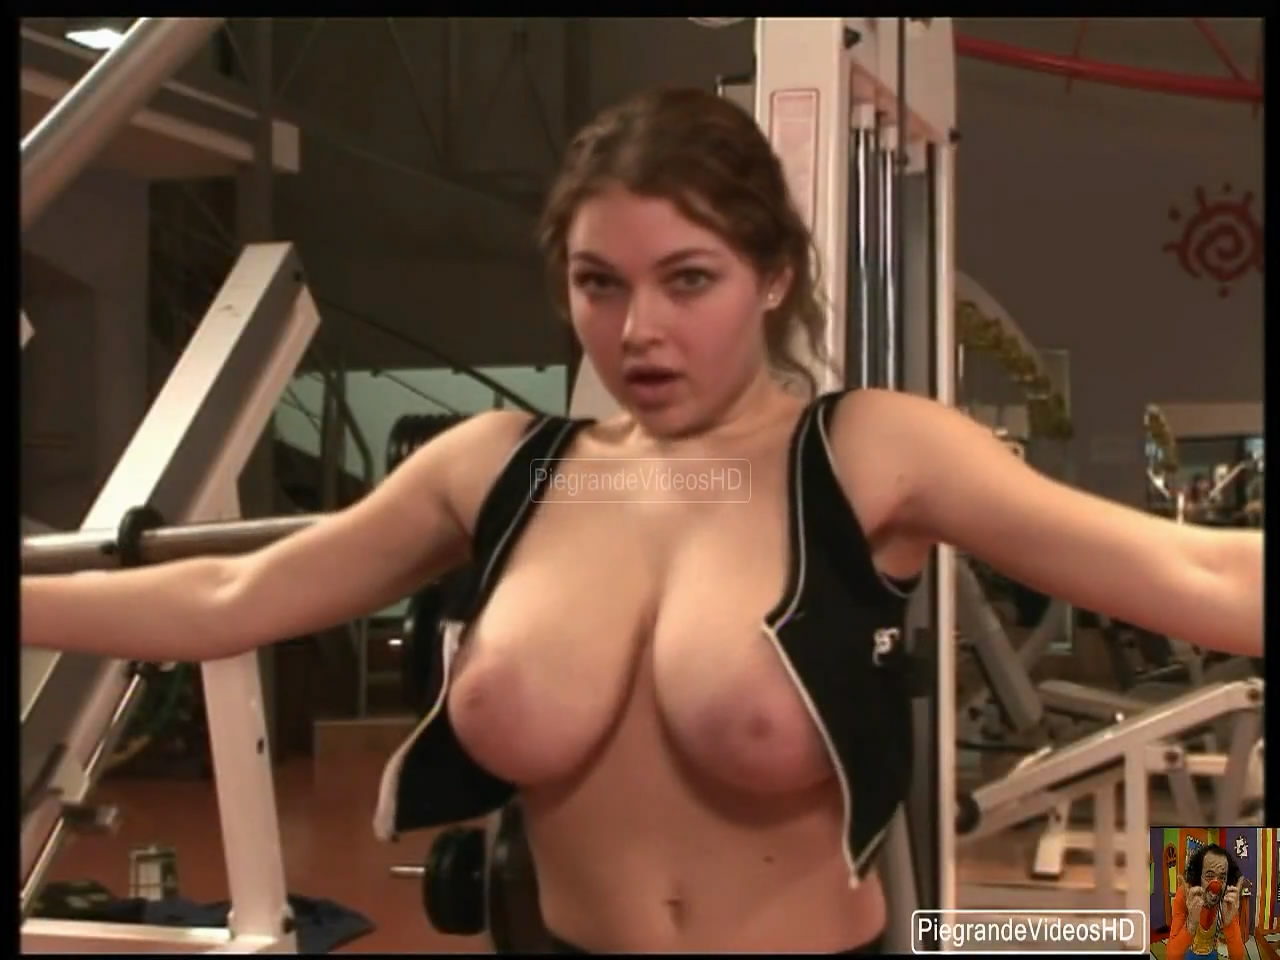 funny nude on the gym